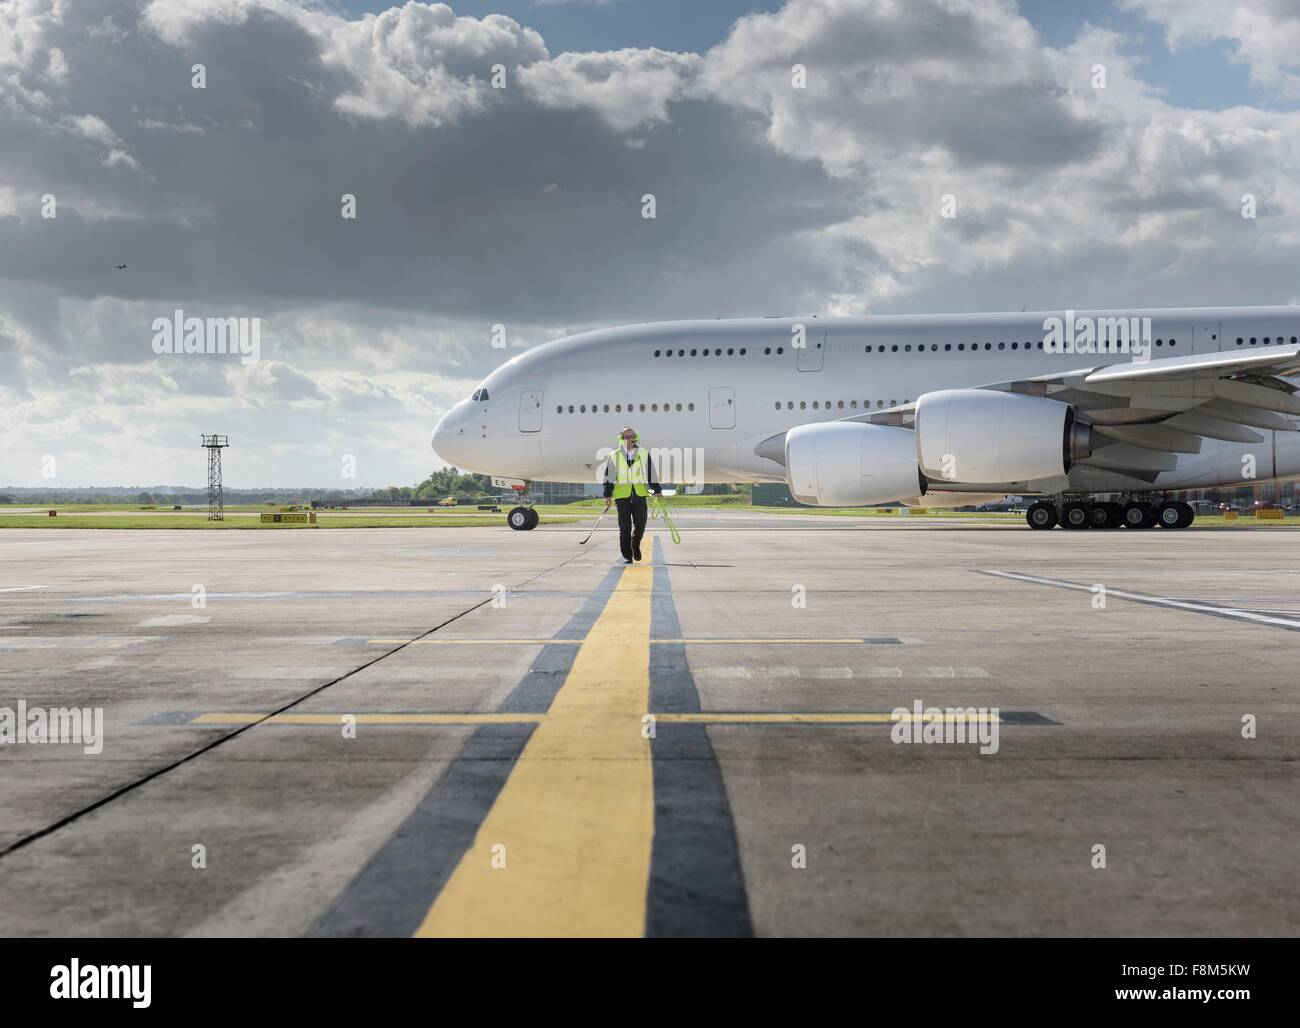 Chief engineer walking from runway as A380 aircraft departs from airport - Stock Image